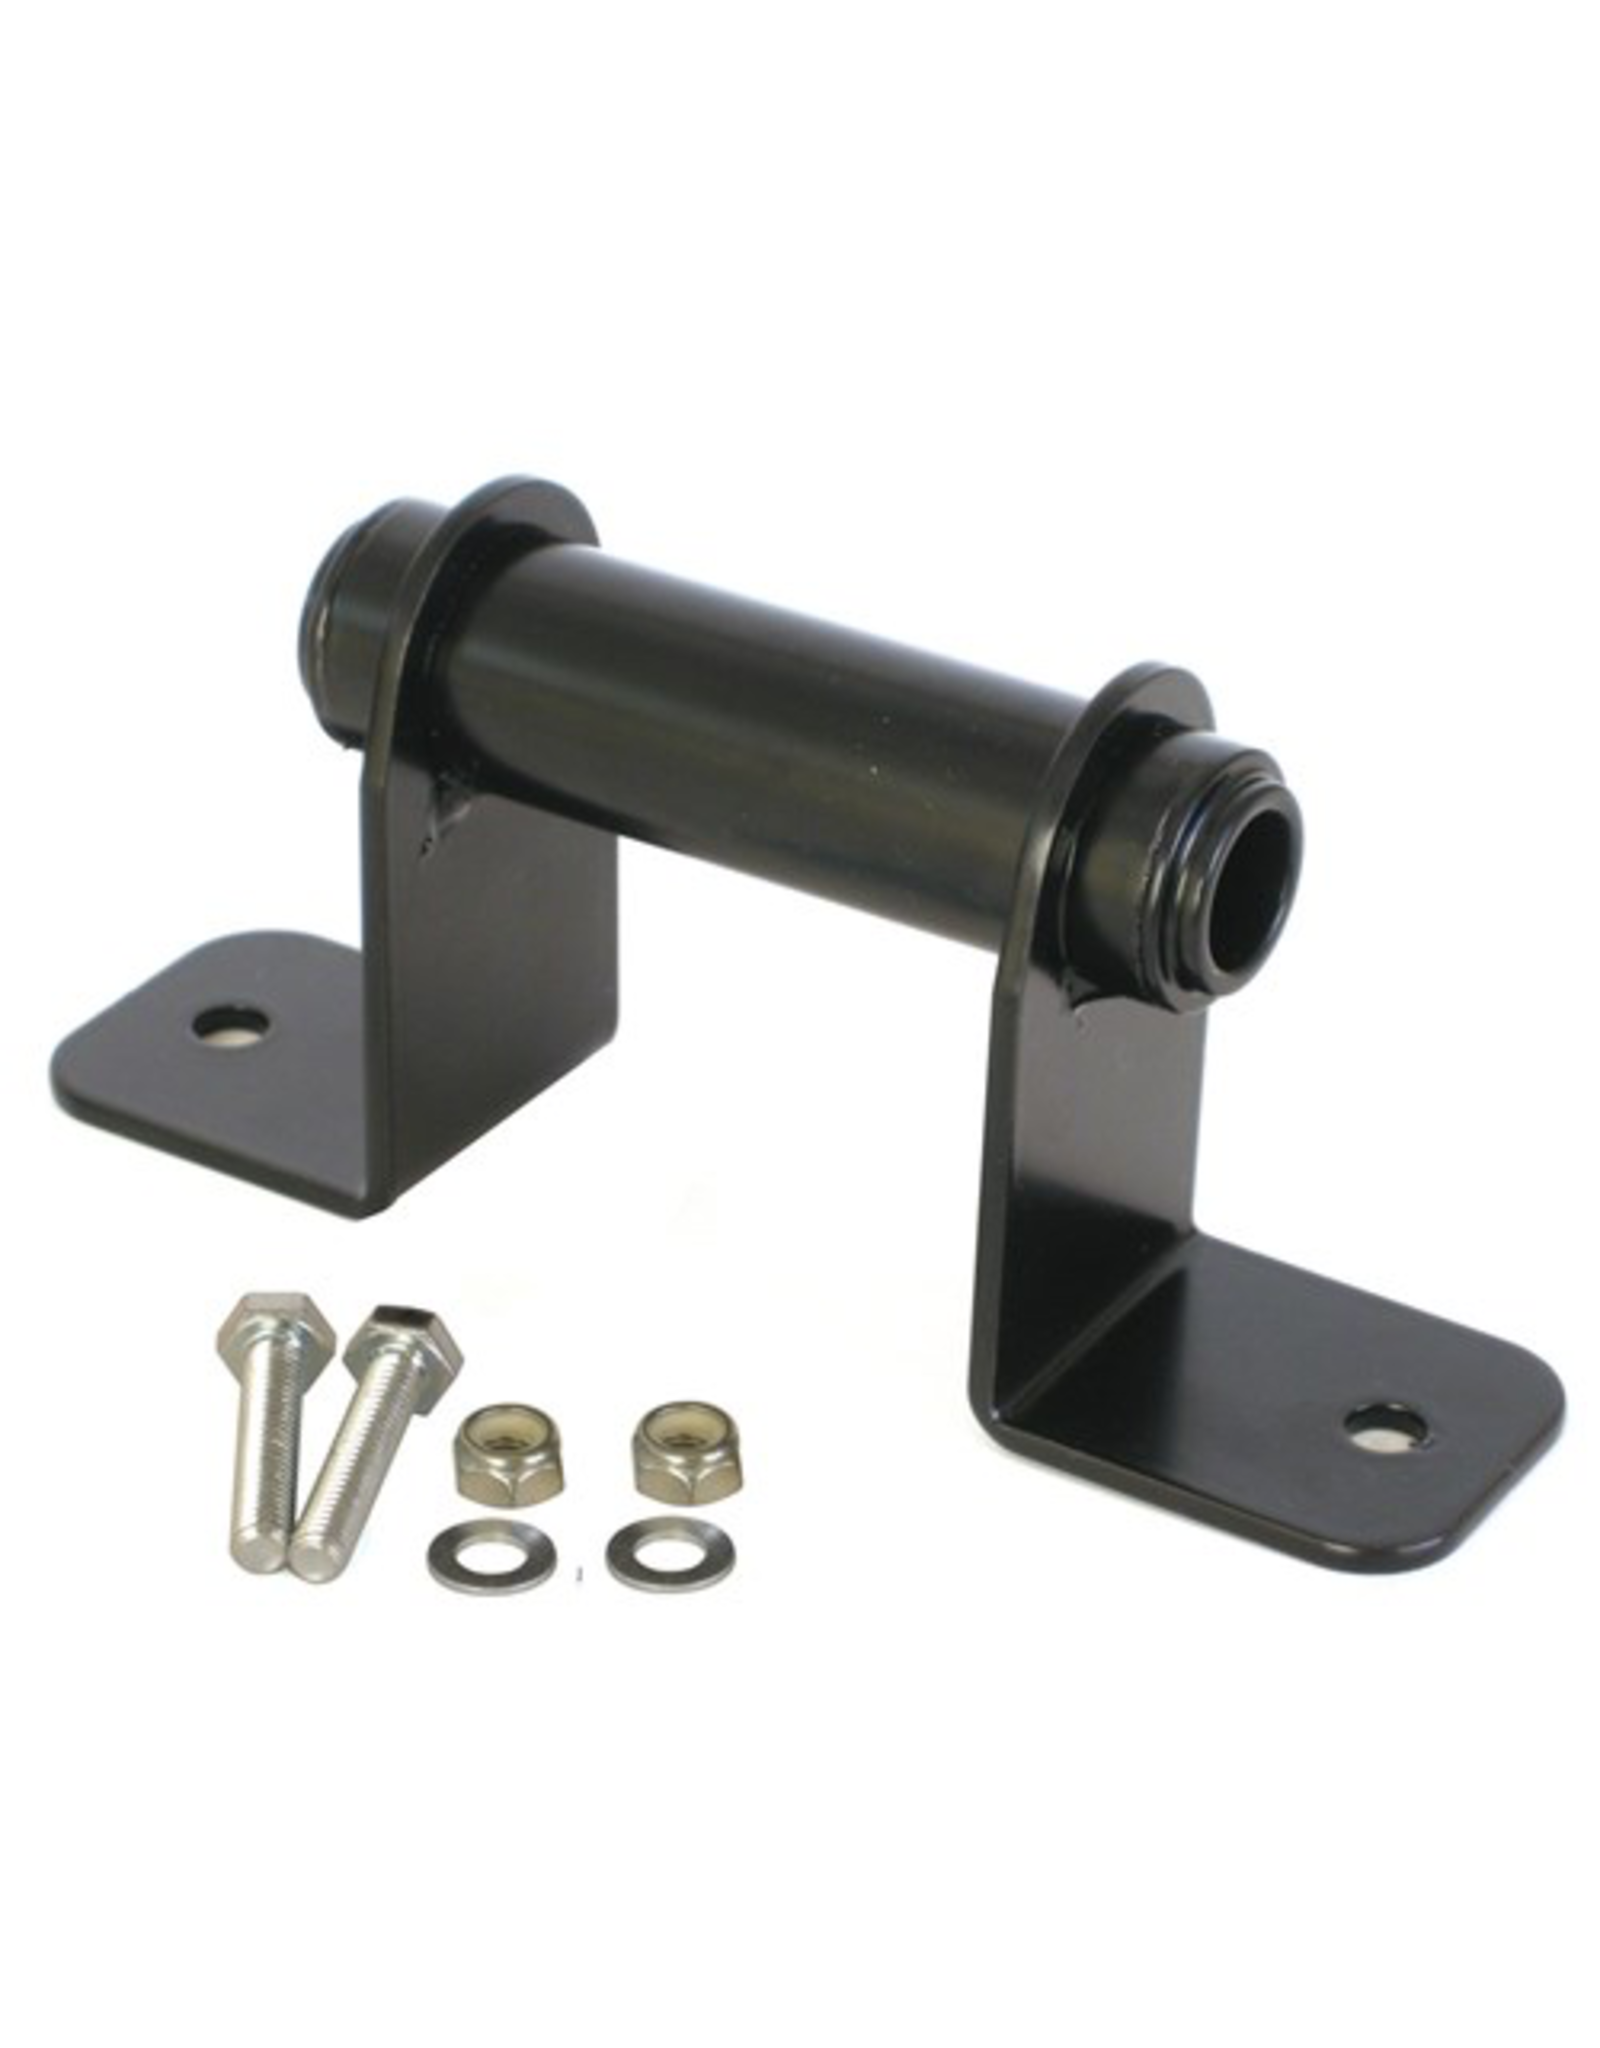 PRO SERIES PRO SERIES TRAILER/UTE 15X100MM AXLE FORK MOUNT ANCHOR POINT